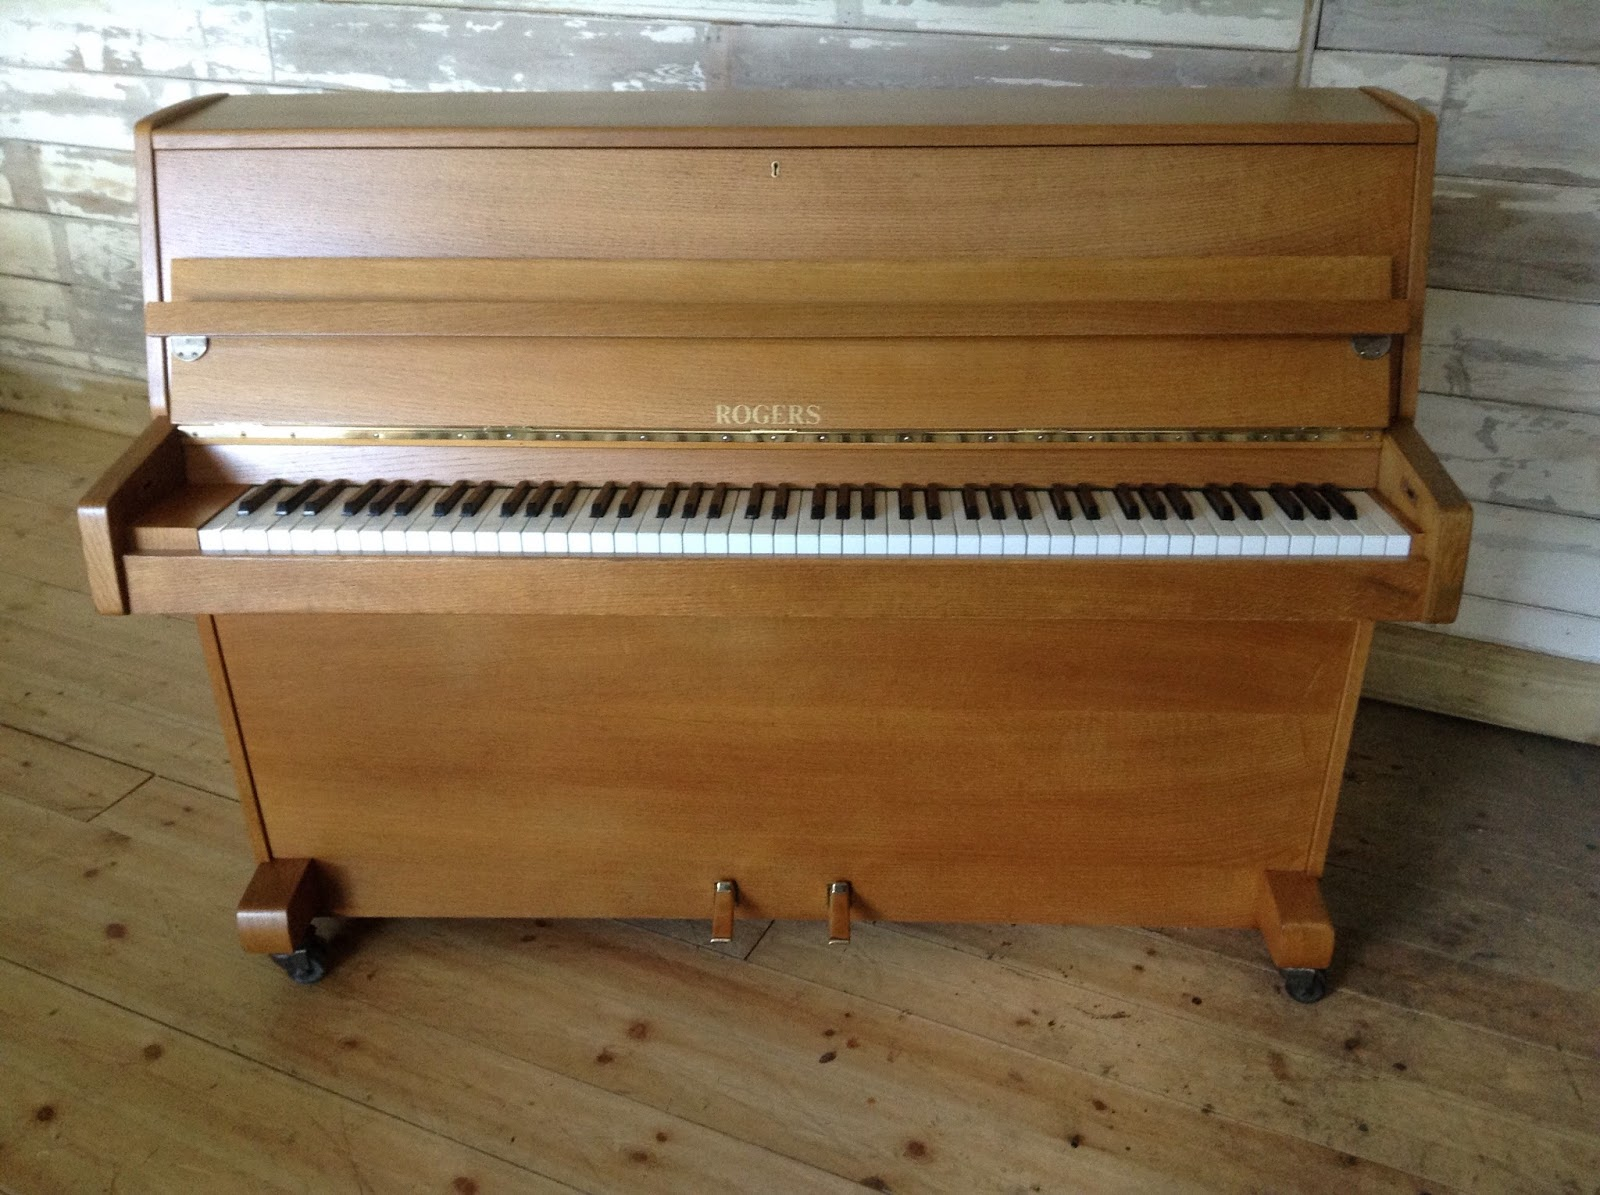 Kawai Upright Pianos For Sale Ebay >> William Young Piano Restoration Compact Modern Upright Pianos Plus